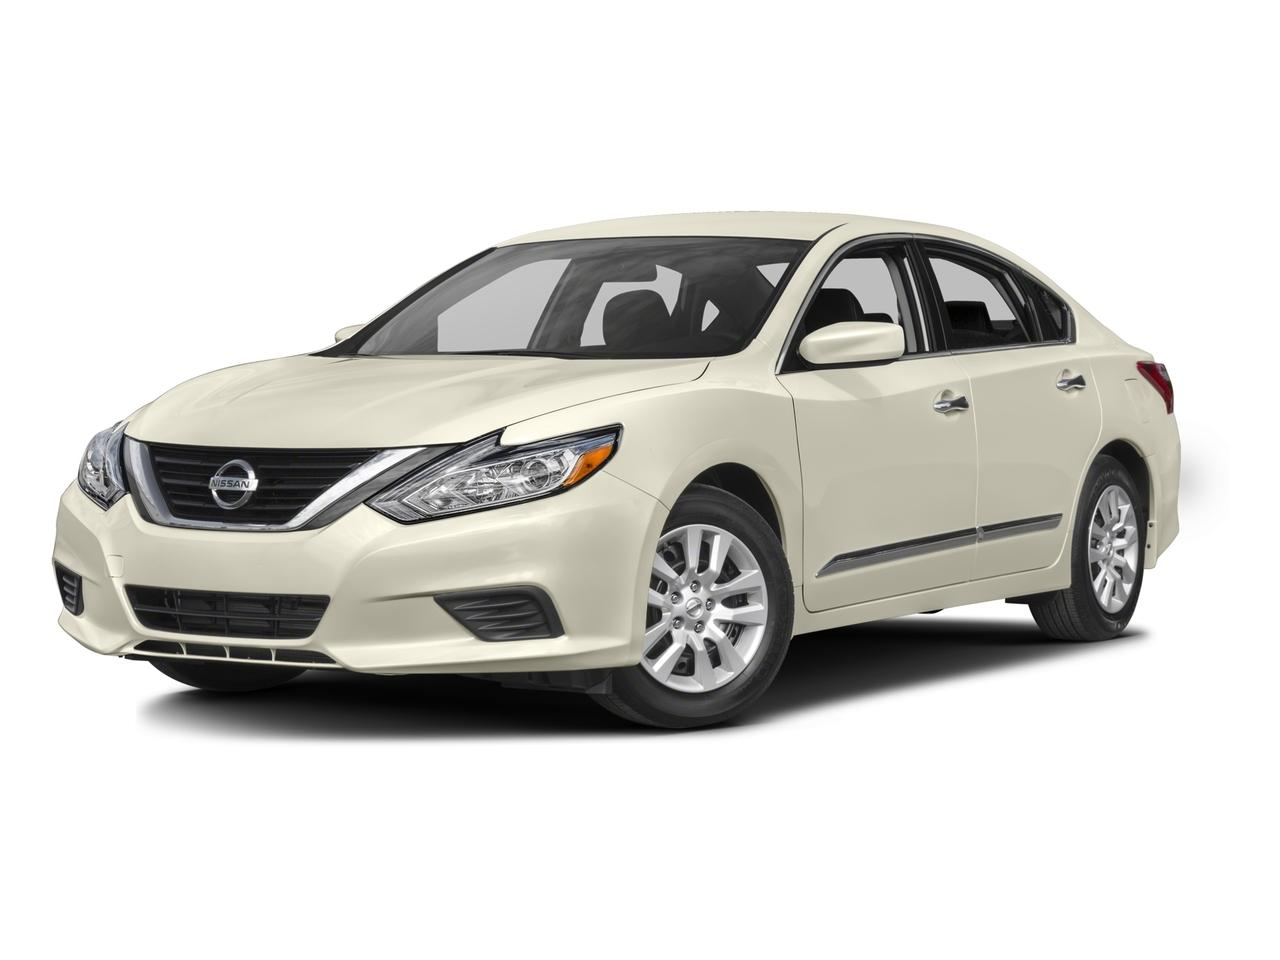 2016 Nissan Altima Vehicle Photo in AKRON, OH 44320-4088